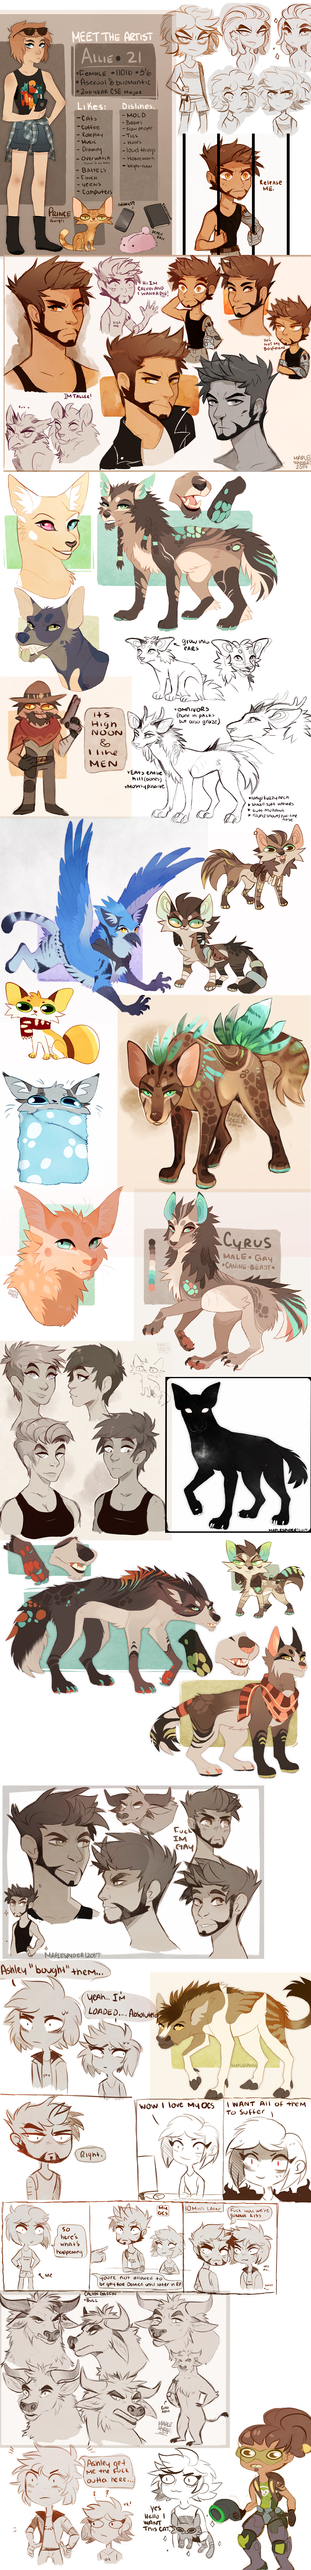 Sketchdump X by MapleSpyder